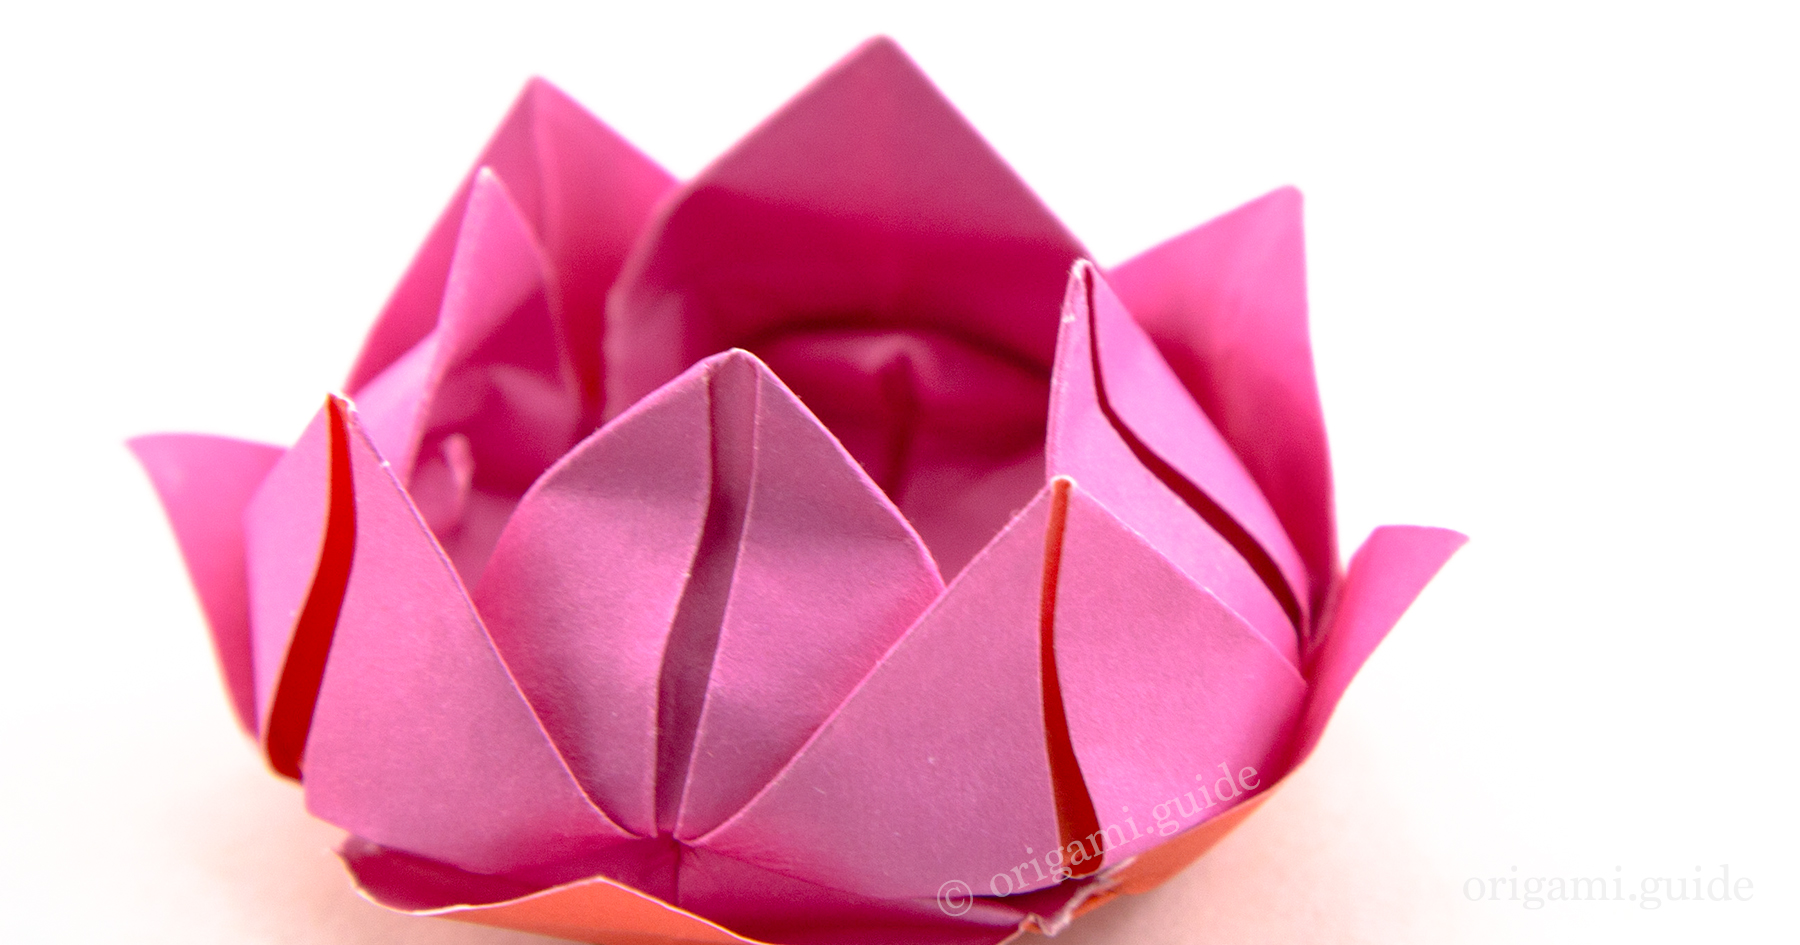 How To Make An Origami Lotus Flower | Origami Guide - photo#26